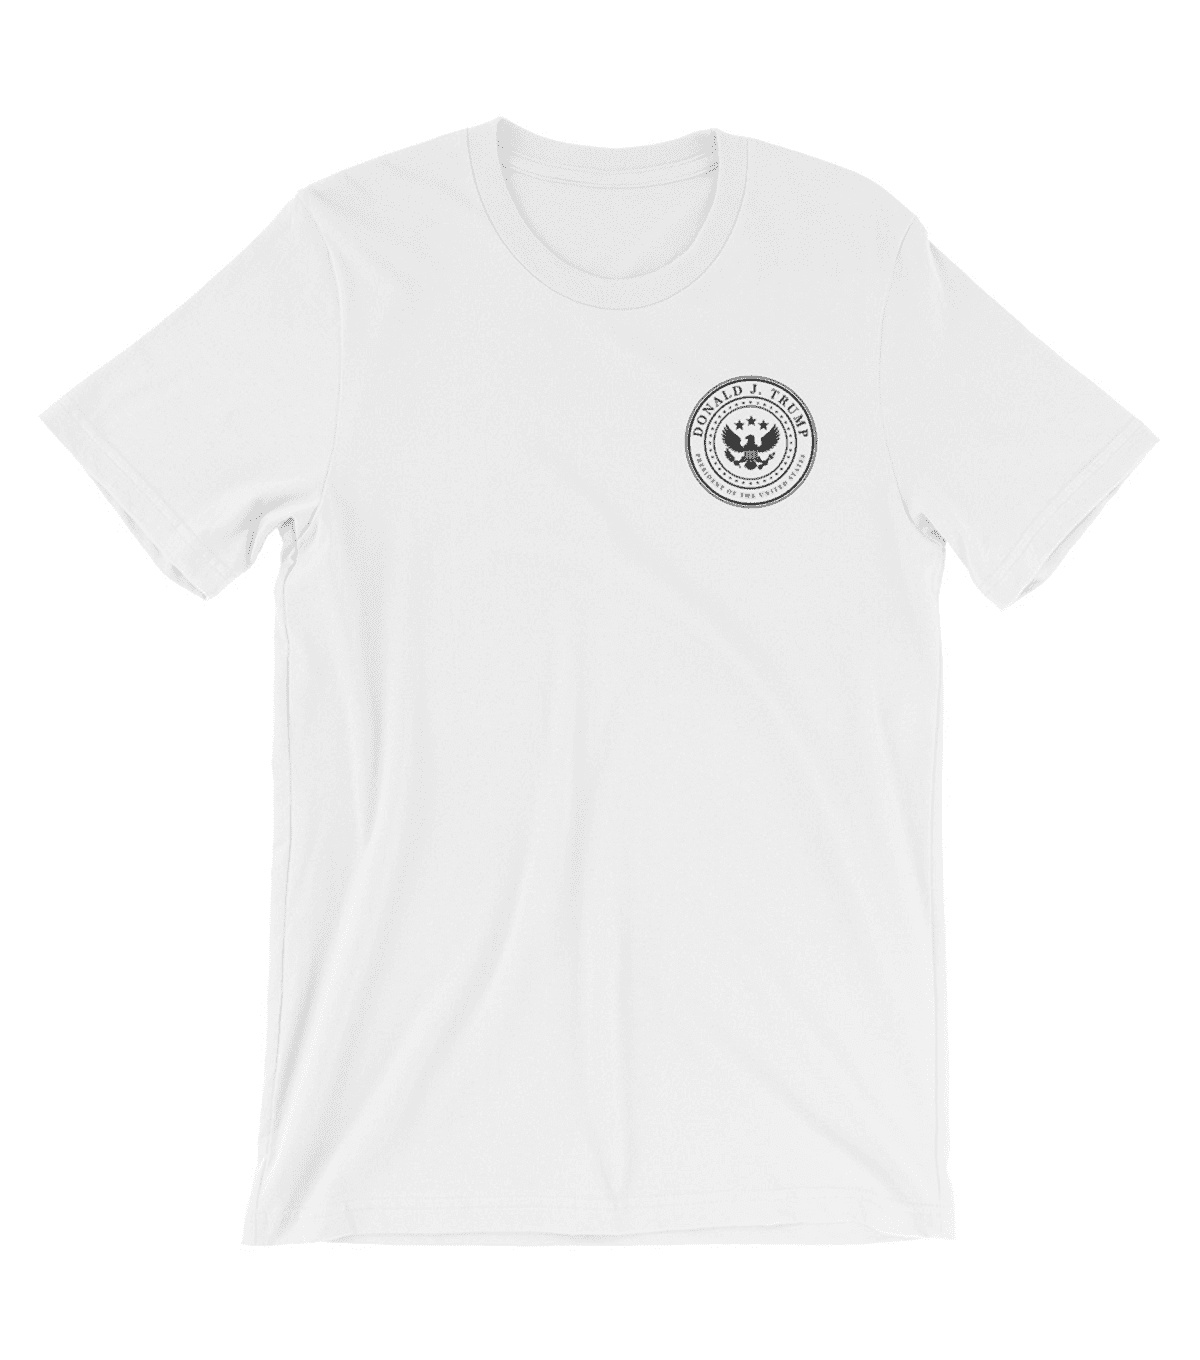 White & Black Presidential T-Shirt